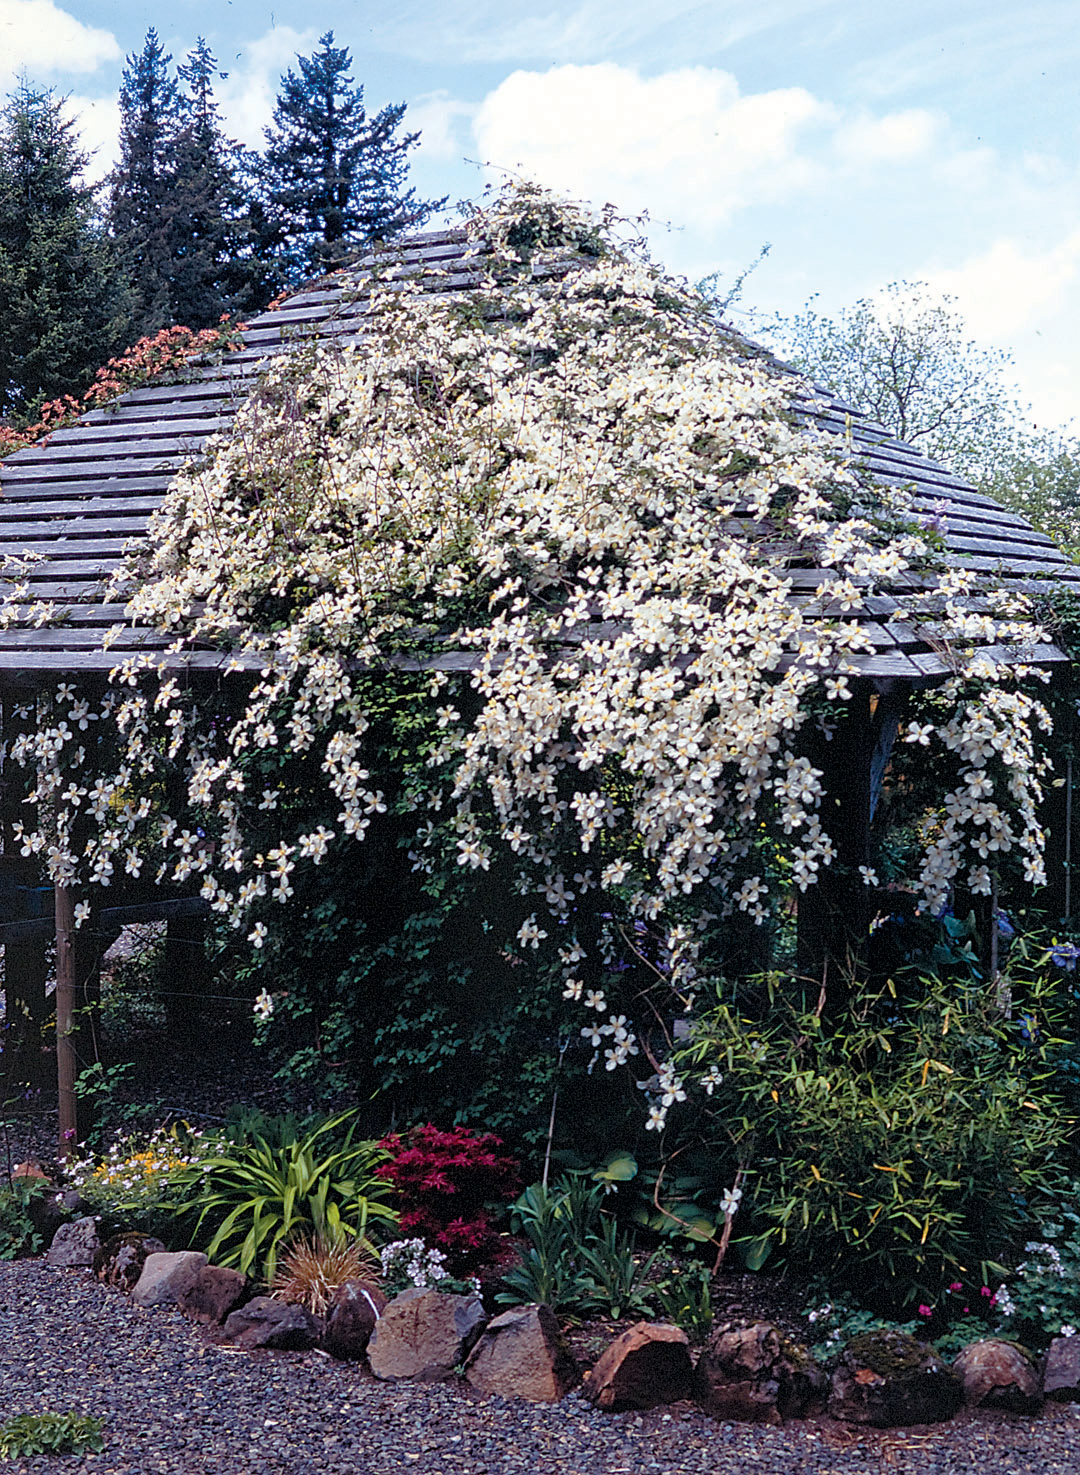 Pacific horticulture society kinzy faire clematis clematis spooneri flowering in spring on pennys shade house photograph by allan mandell mightylinksfo